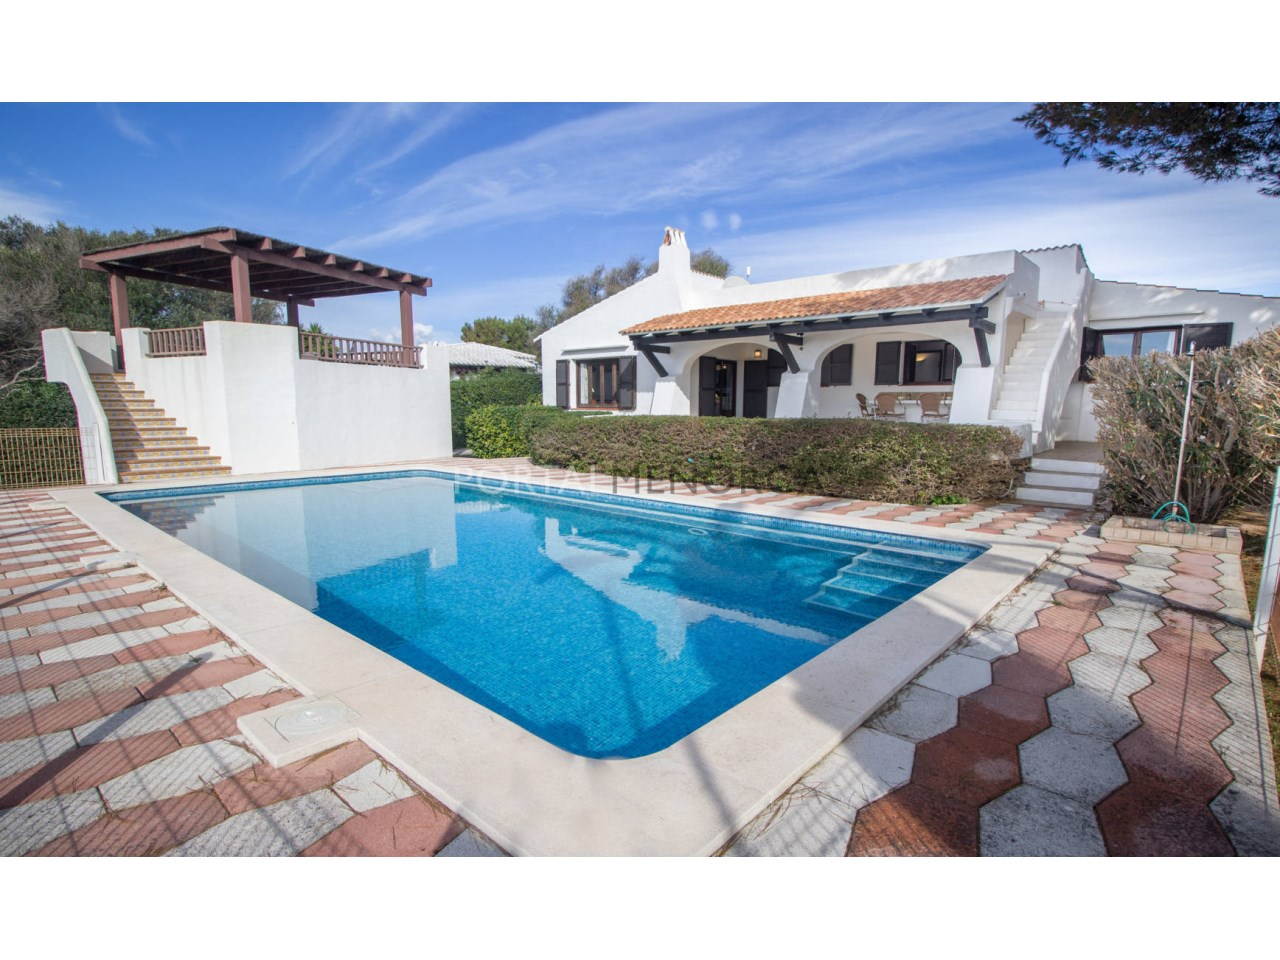 House by the sea with pool for sale in Binibeca